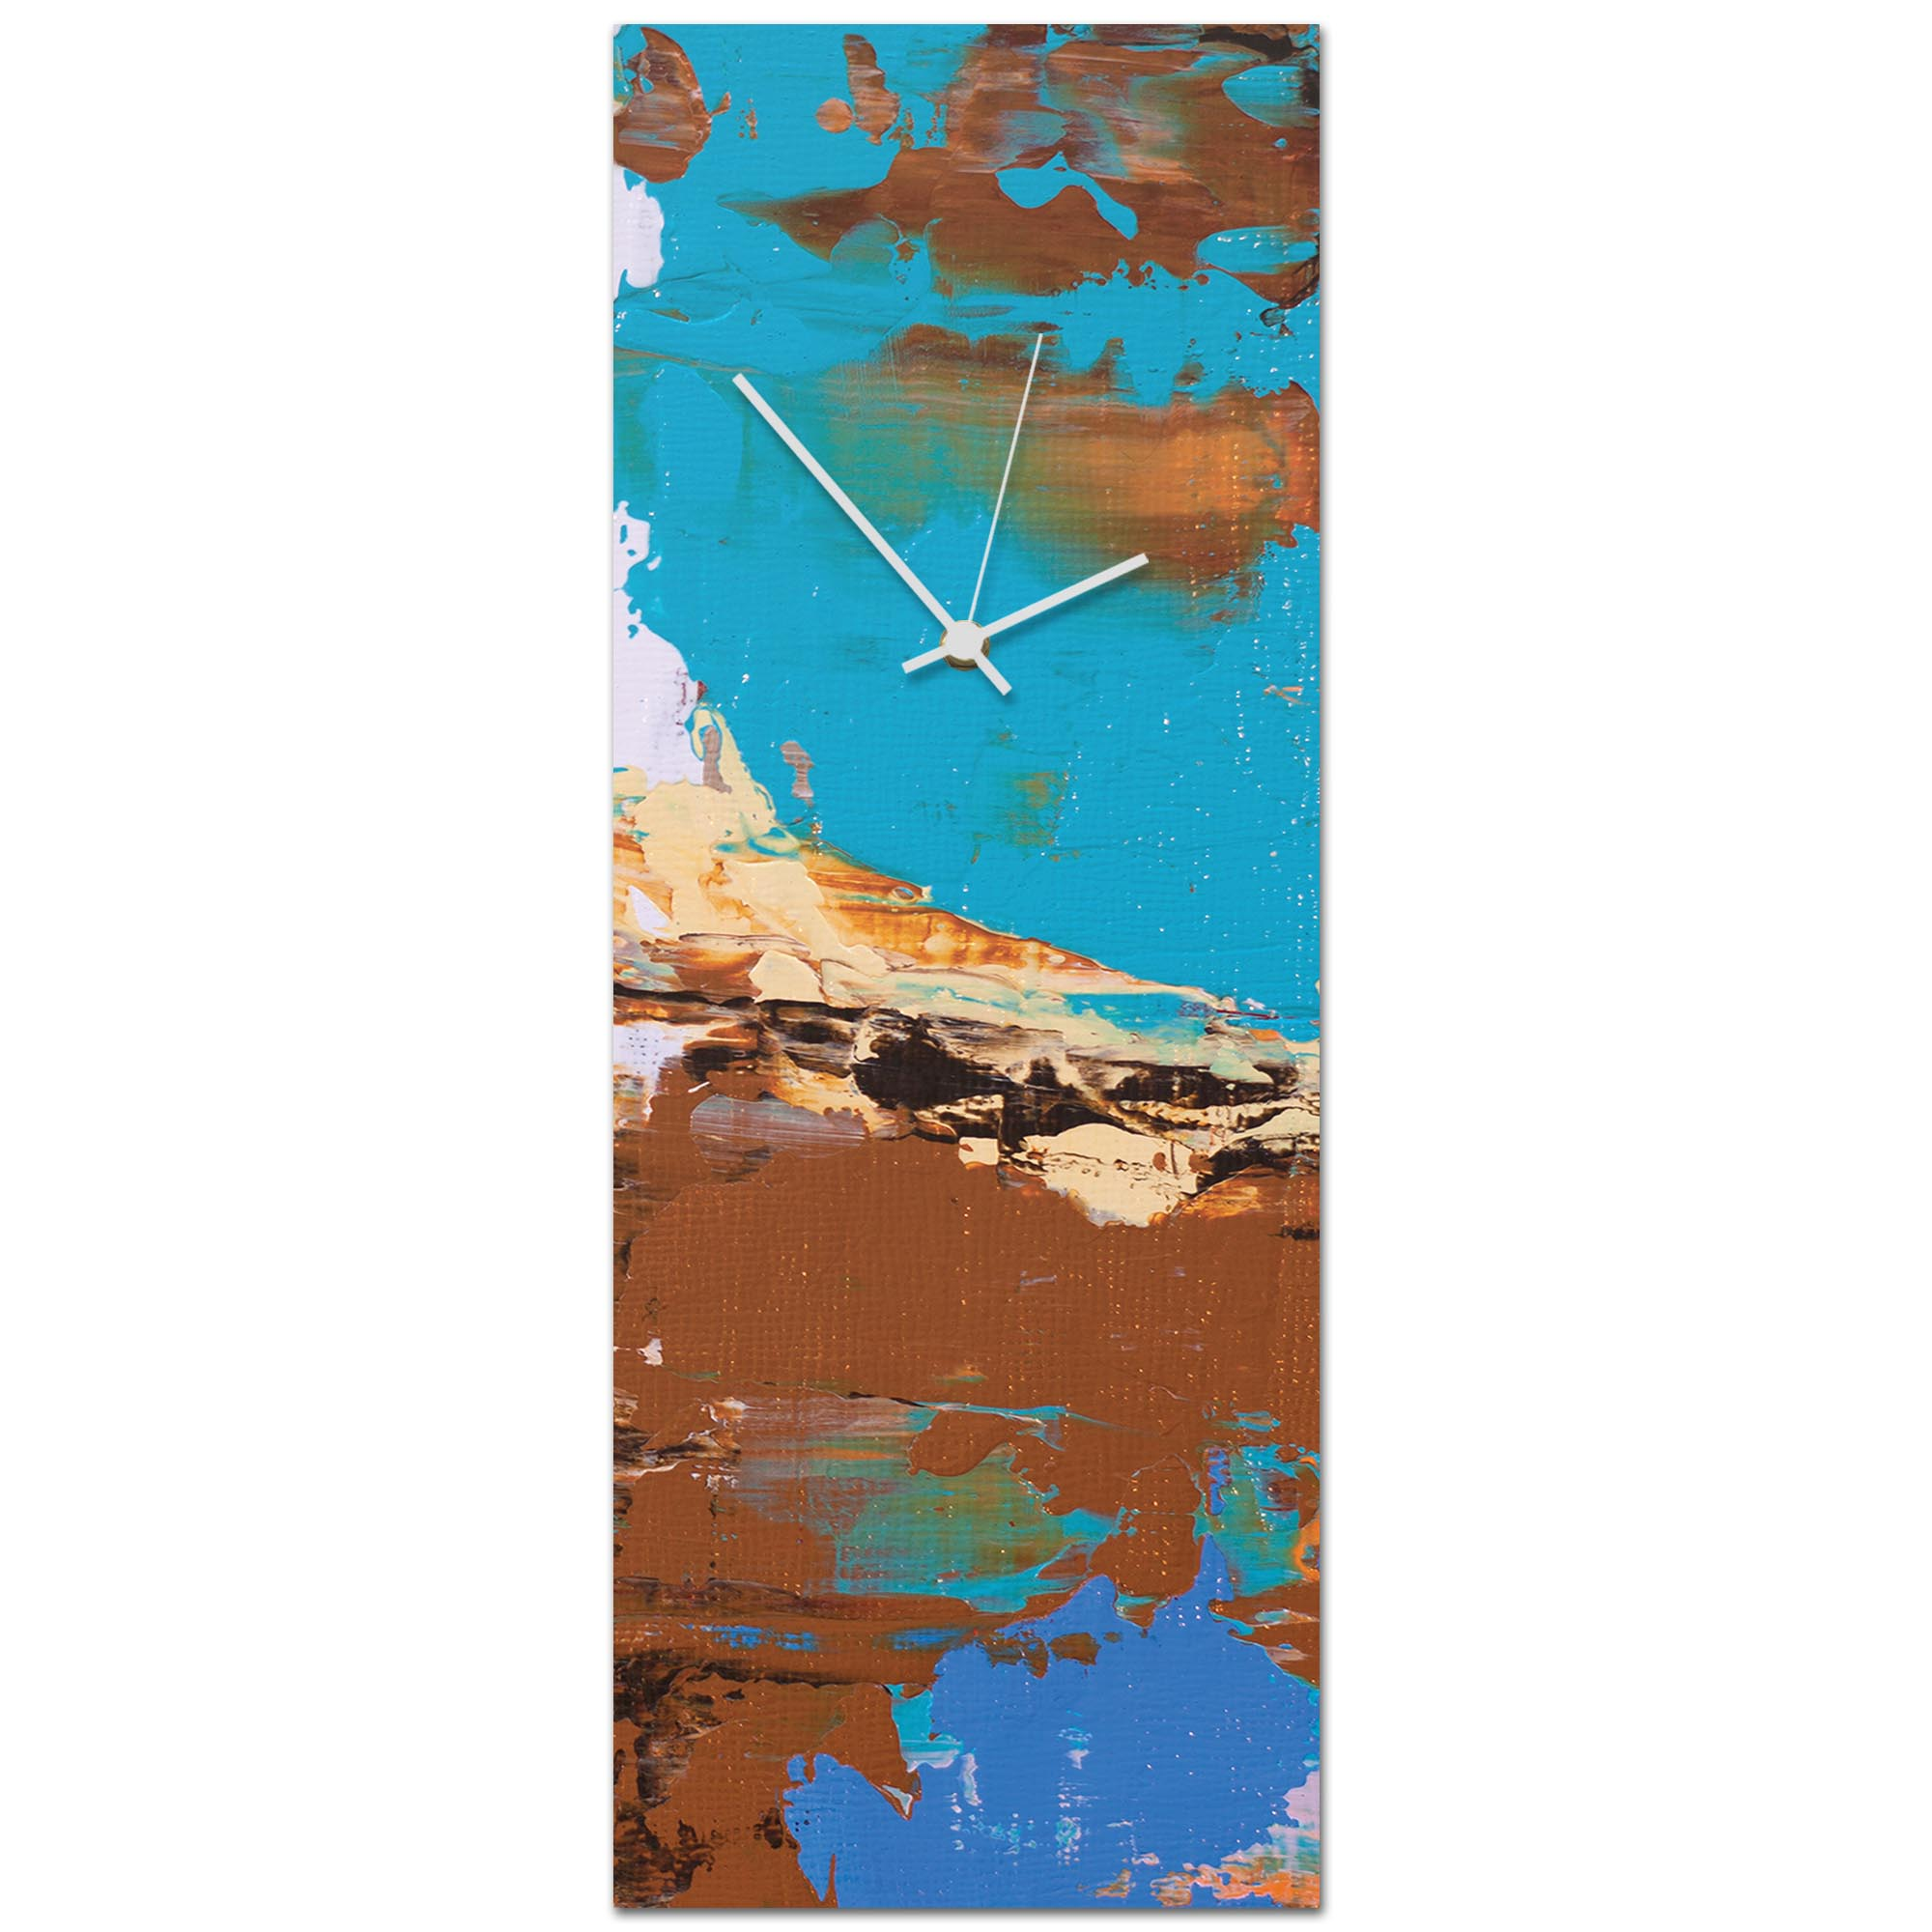 Urban Earth v3 Clock Large 9x24in. Metal